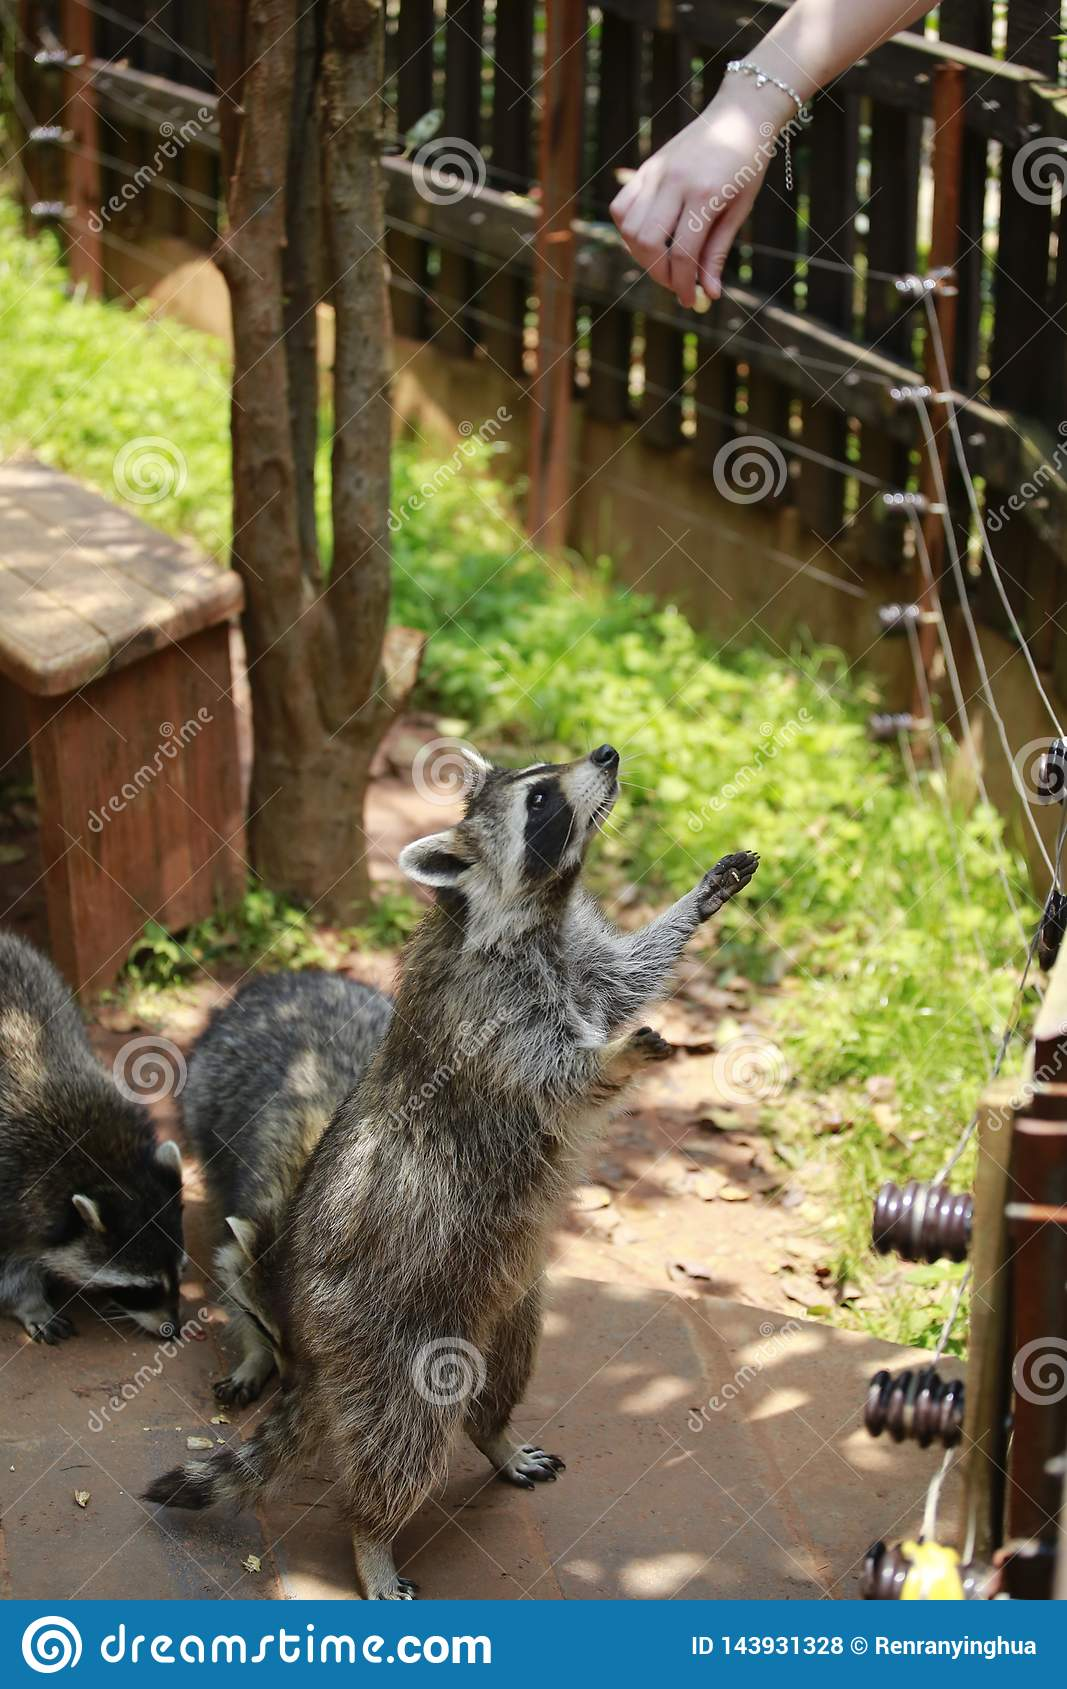 An animal of the raccoon family of the genus Ursus. From North America, because the food is washed in the water before eating, hen